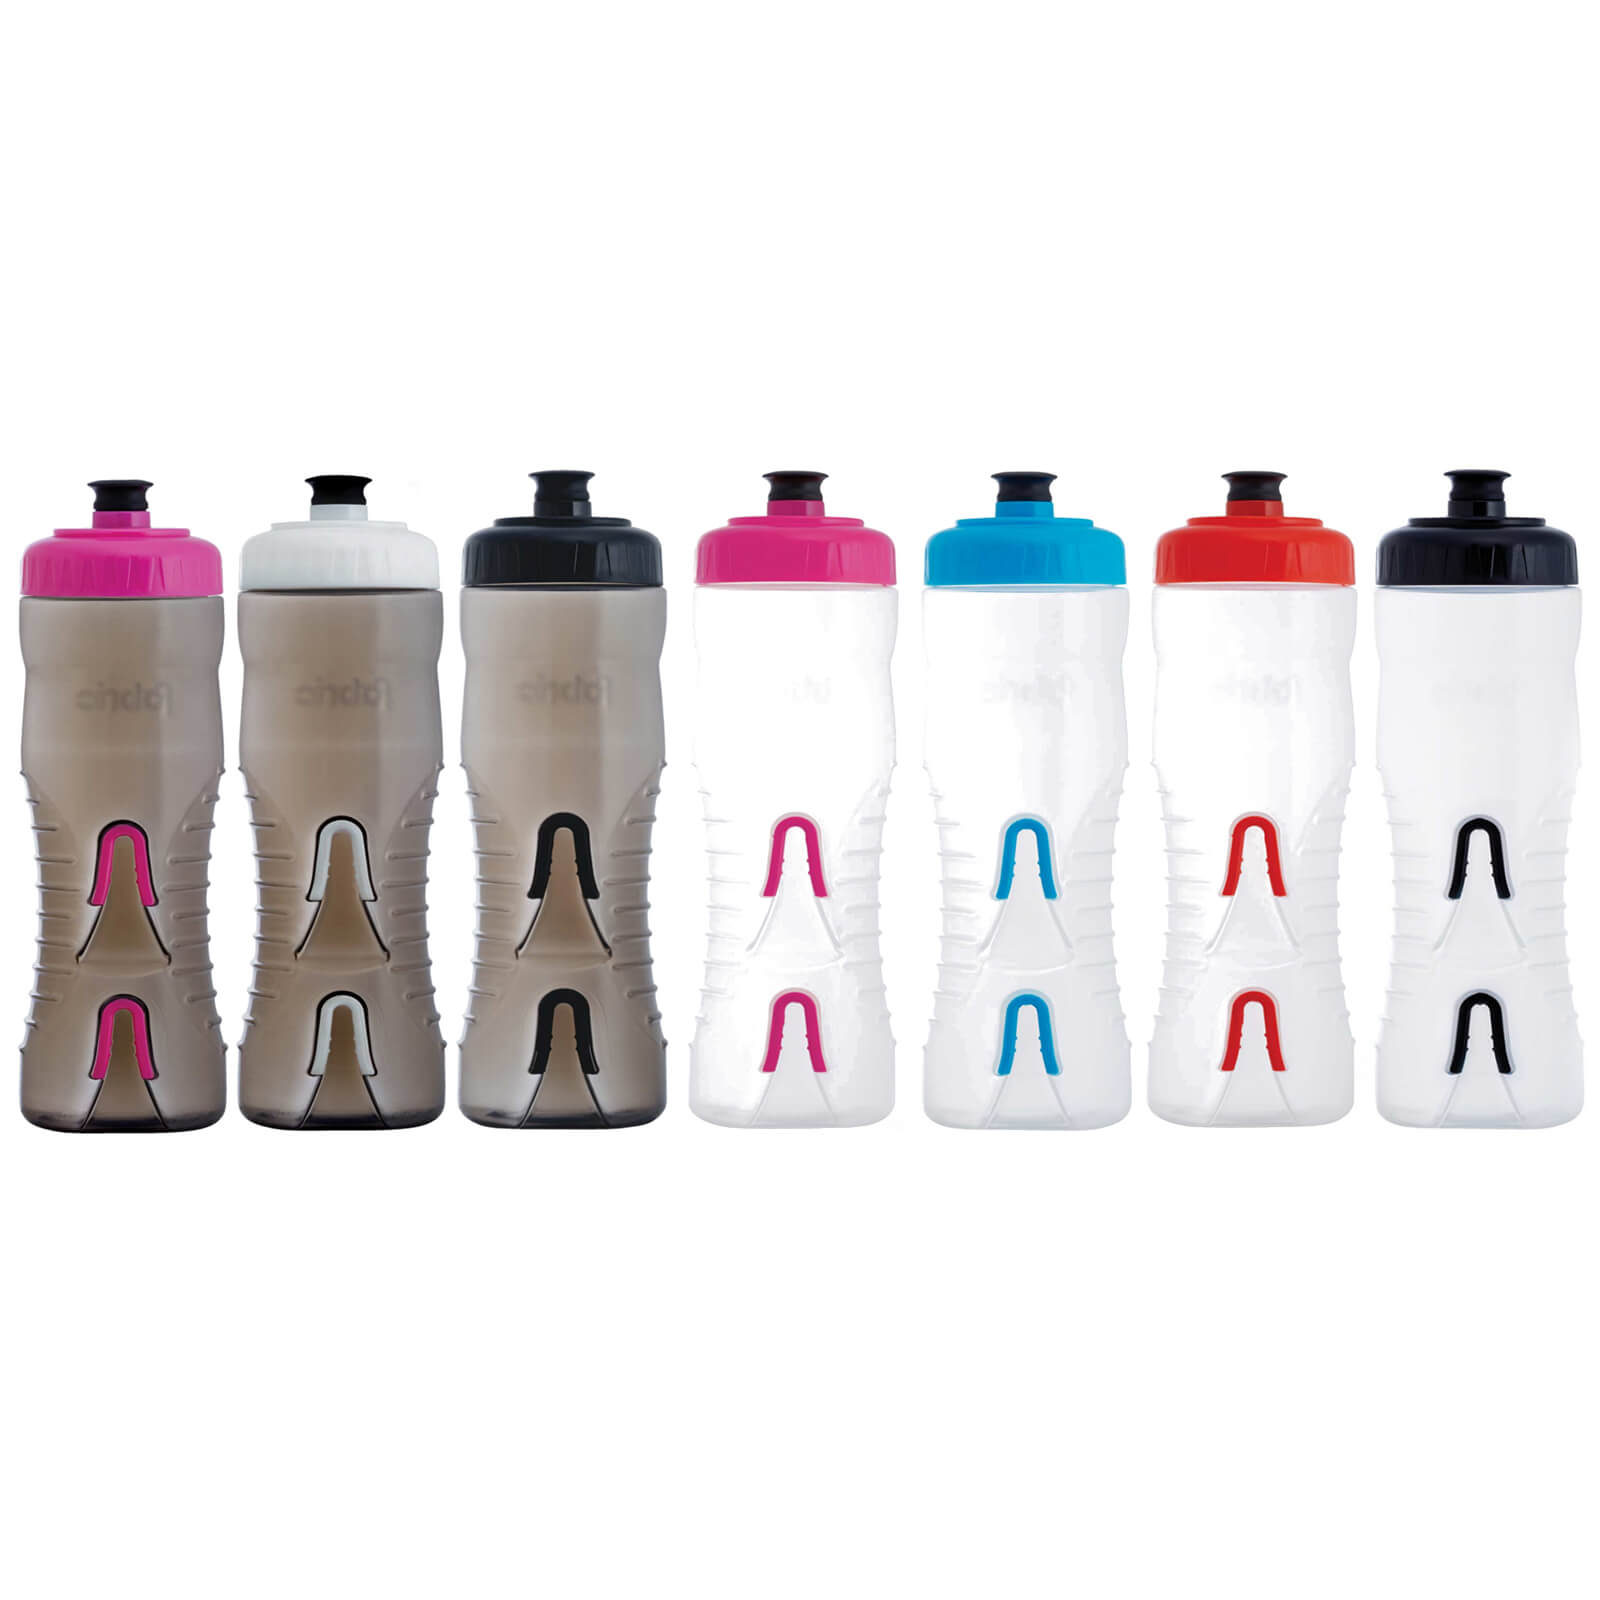 Fabric Cageless Water Bottle - 750ml